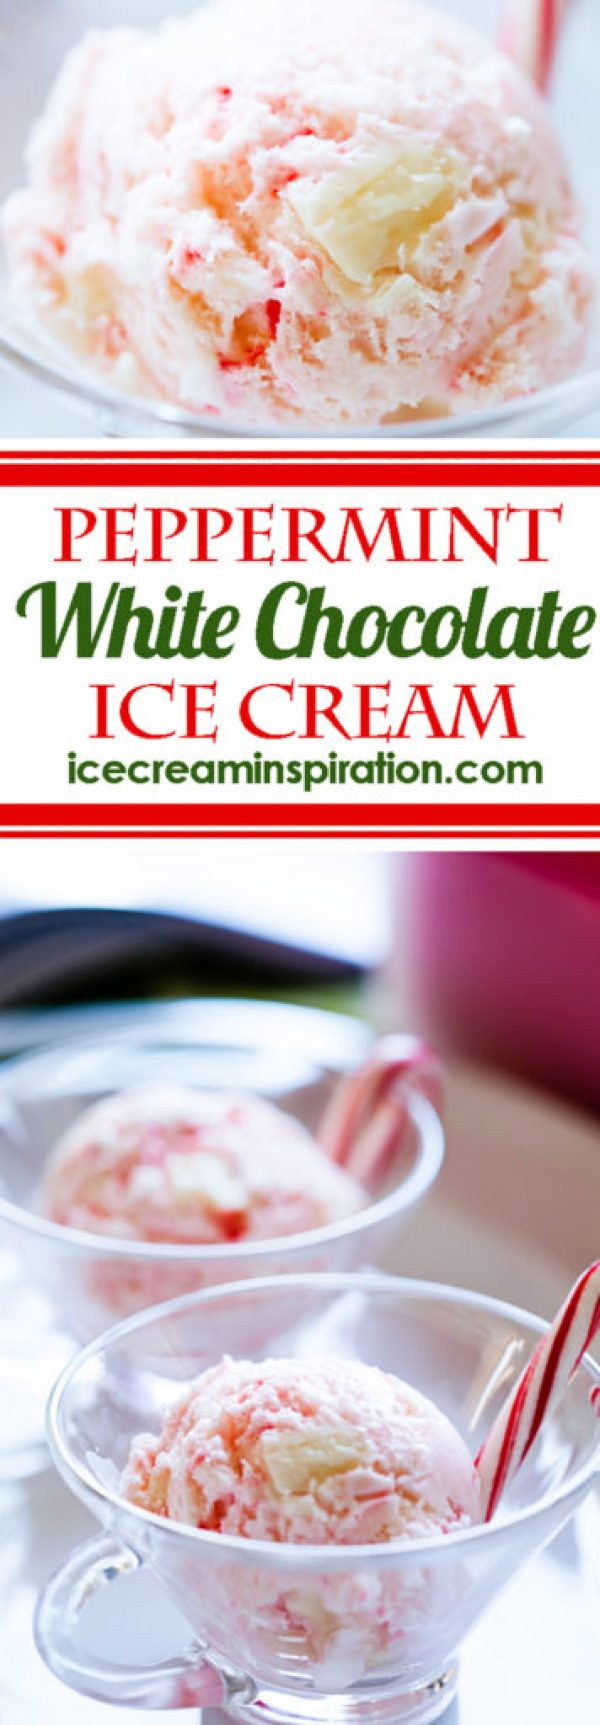 This Peppermint White Chocolate Ice Cream is the perfect way to use up all those candy canes. Add some white chocolate, and you have a truly special flavor of ice cream! Peppermint ice cream, mint ice cream, homemade mint ice cream, Christmas ice cream.